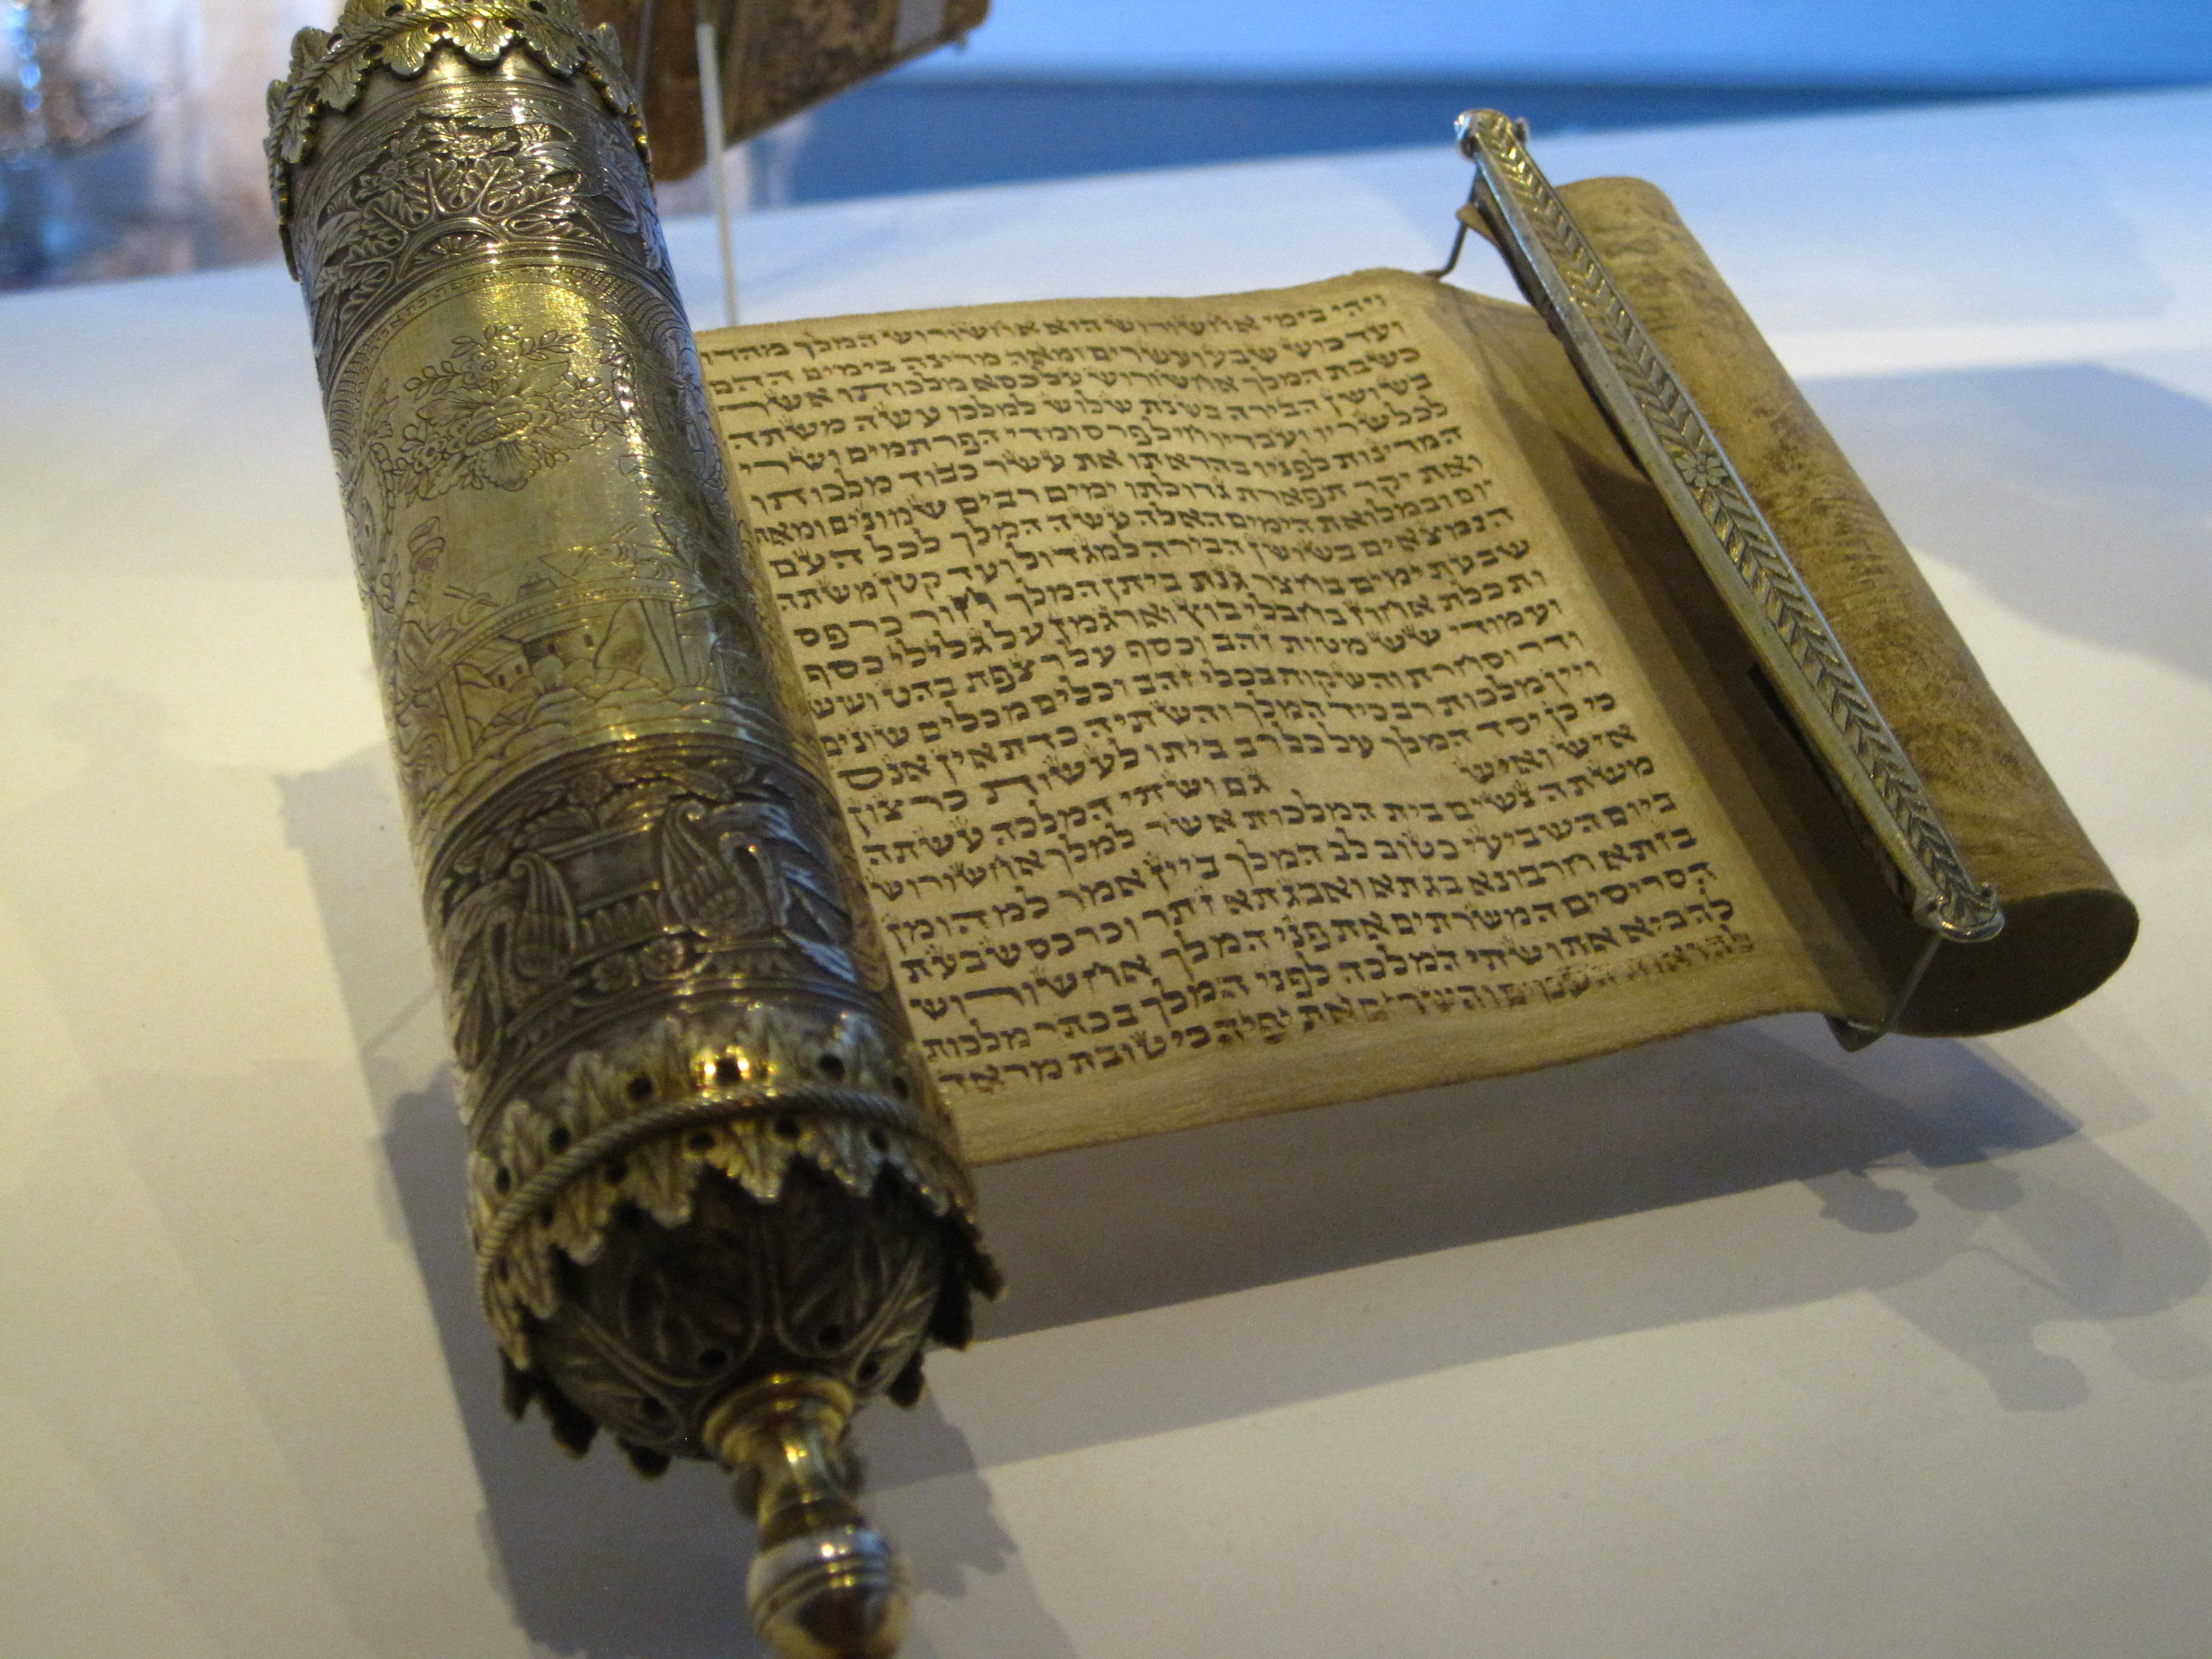 File:Scroll of Esther, Wedding gift (8528811037).jpg - Wikimedia Commons